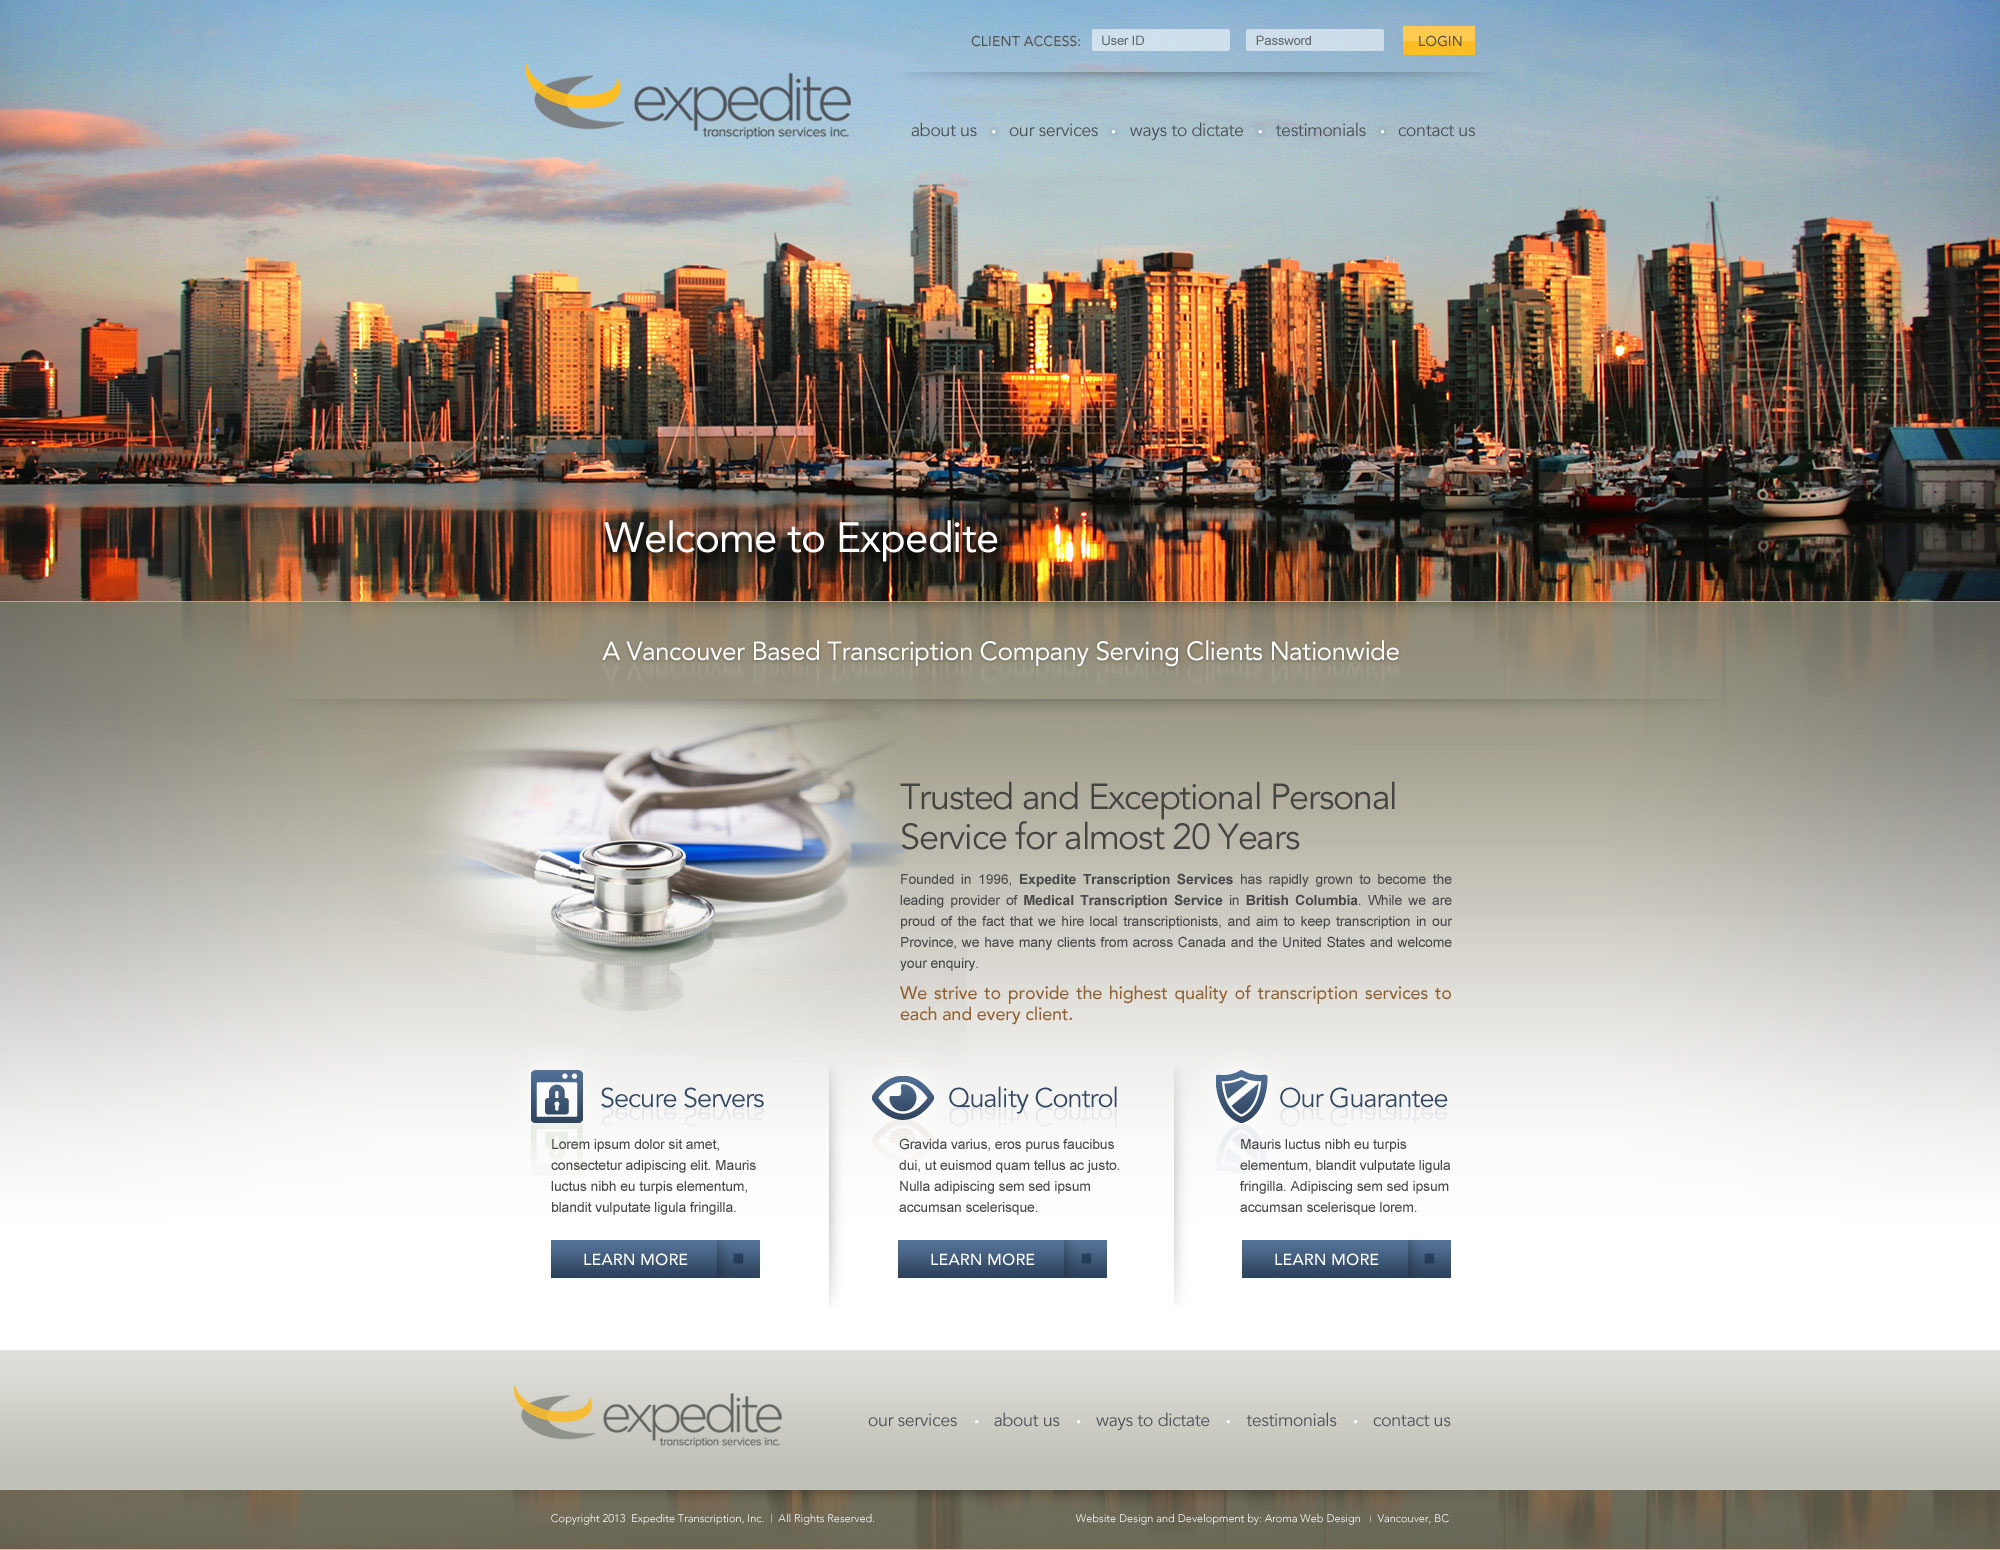 professional-web-design-6.jpg